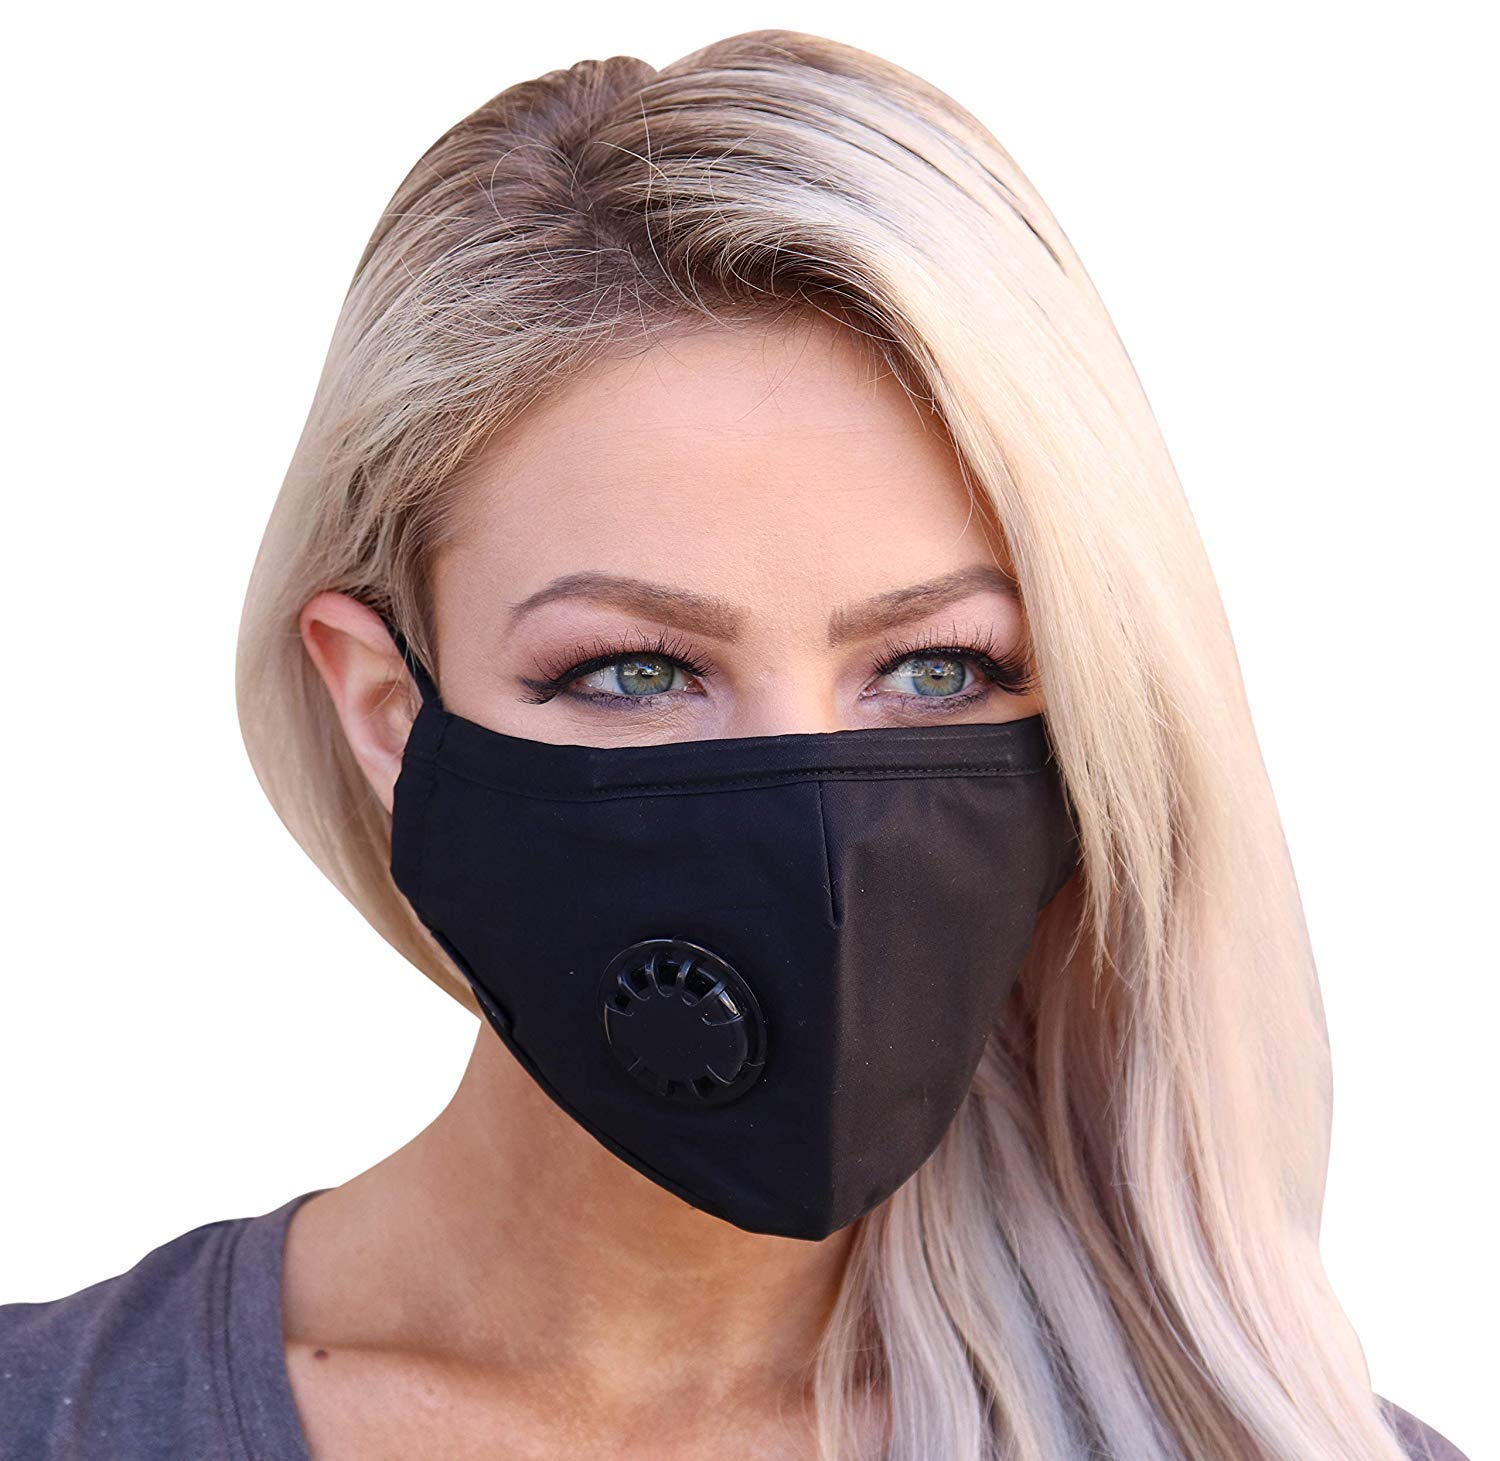 face mask for viral protection face mask for common cold mask for germs protective masks face mask price in india disposable face mask n95 mask online pollution mask mi mask printed face masks india mask price in delhi